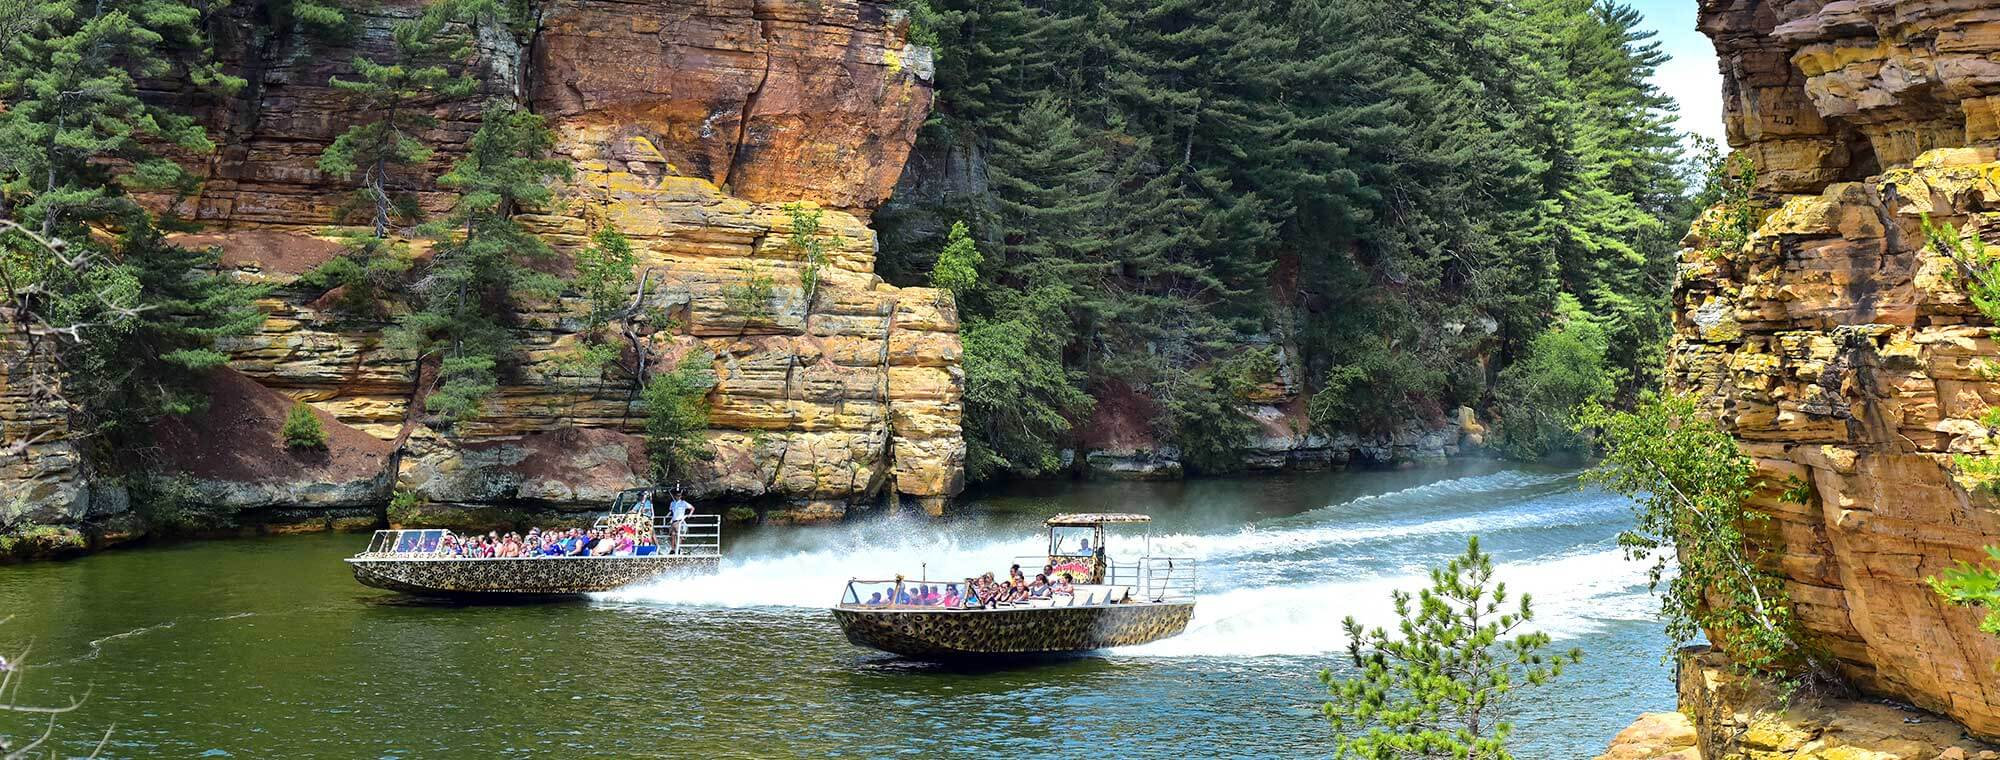 Wisconsin Dells Jet Boat Tour Wild Thing Dells Army Ducks